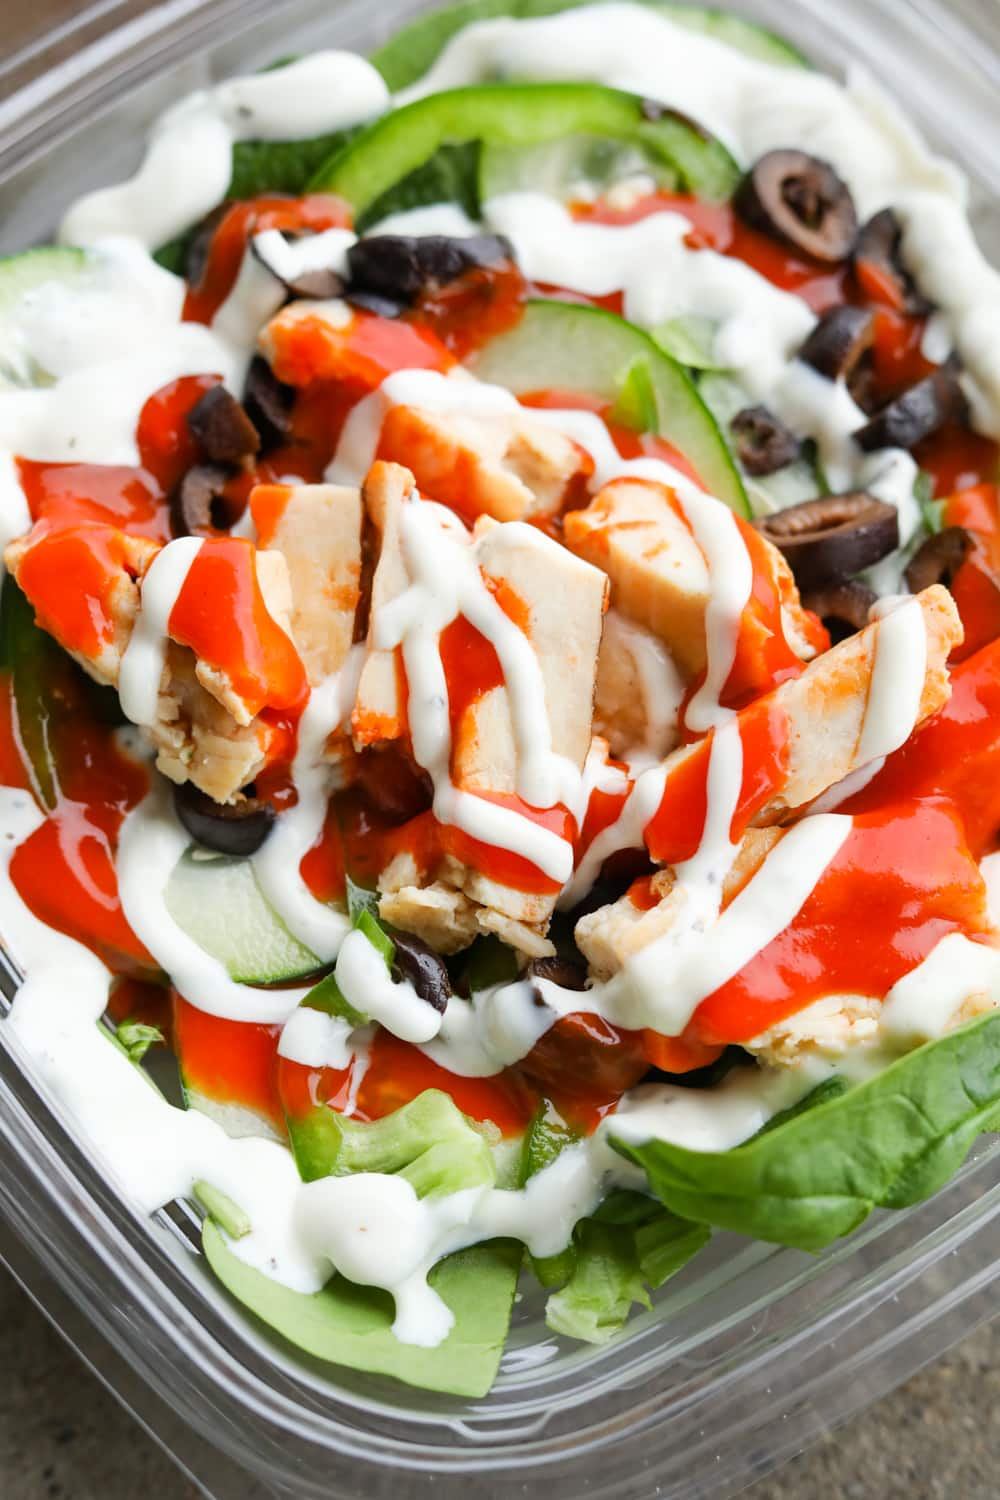 A plastic container filled with green vegetables, black olives, chopped up chicken, and an orange and red sauce.